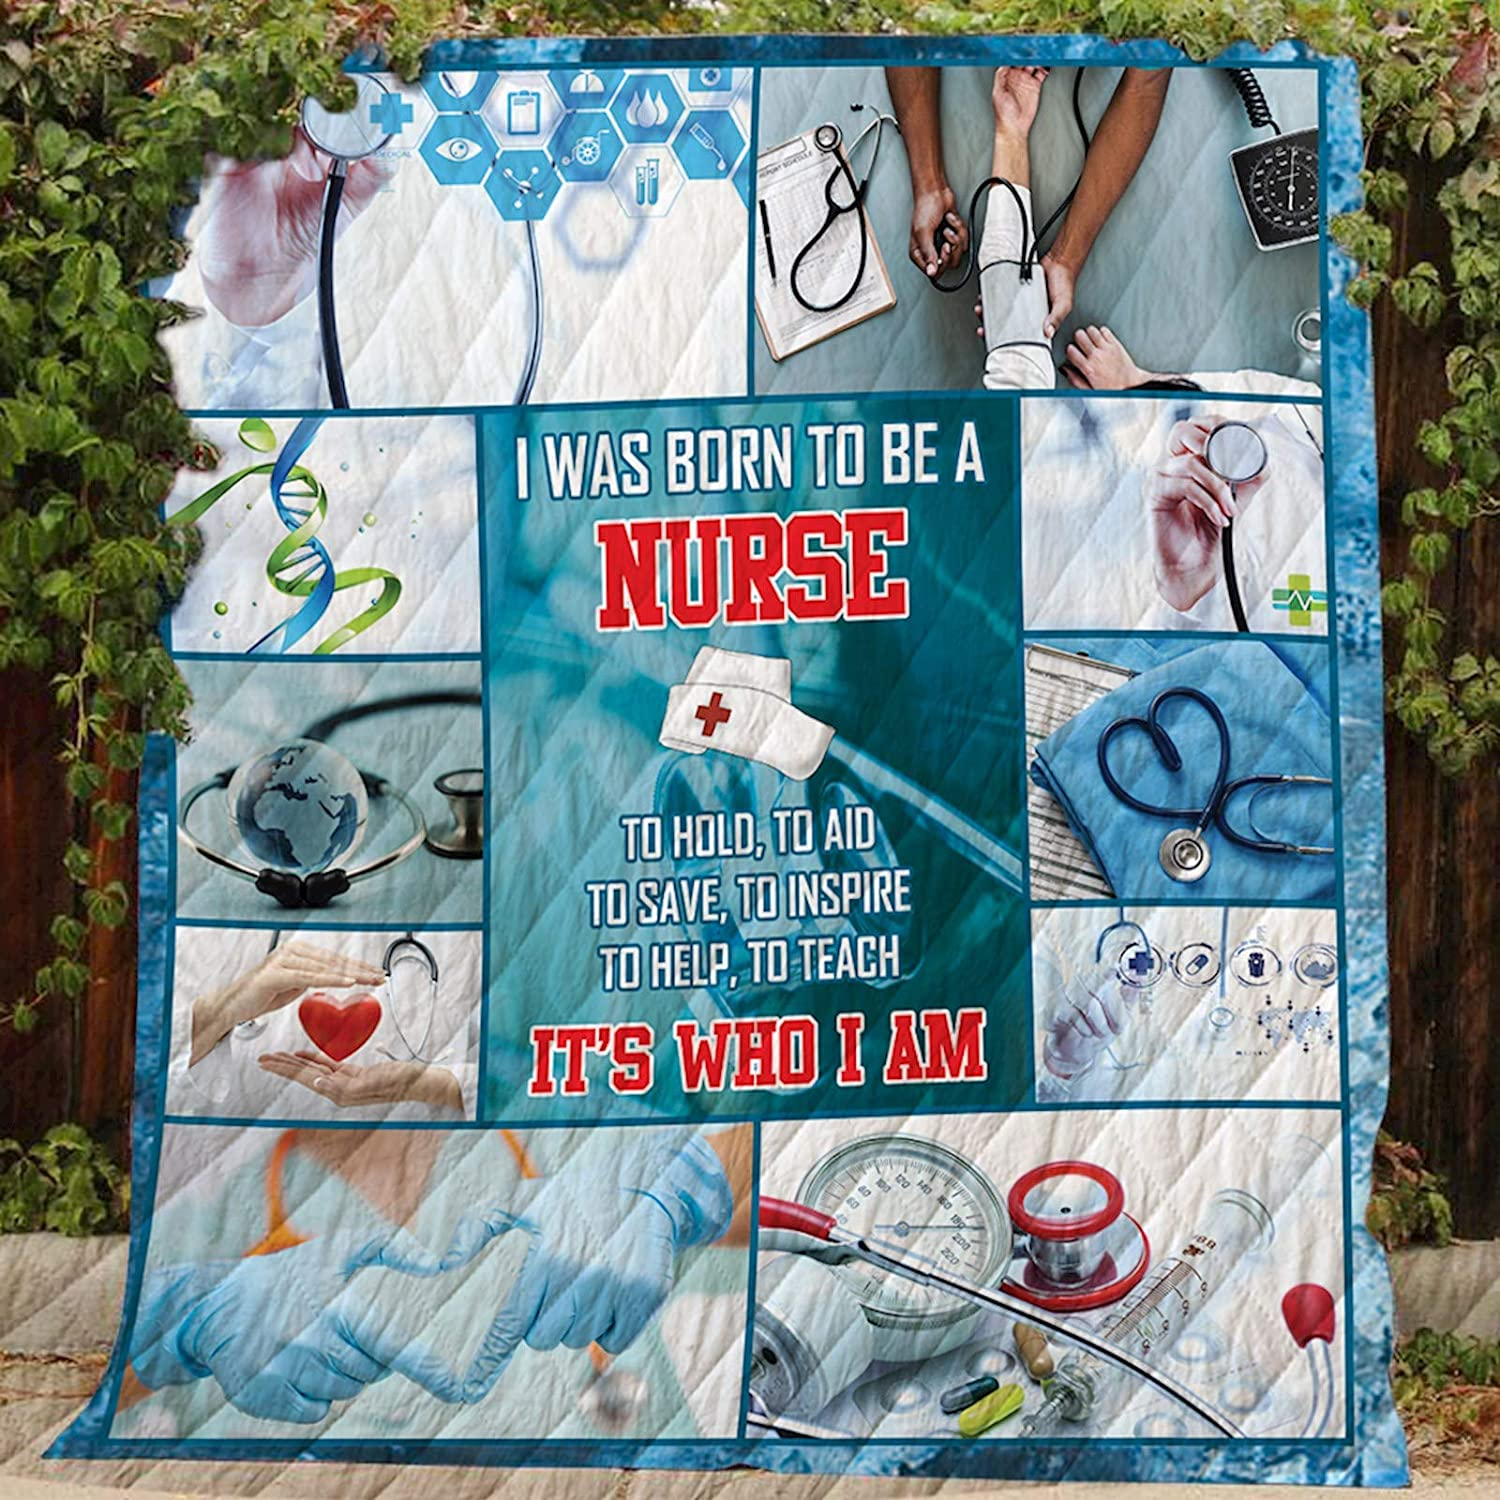 Nursing Life Quilt D228, Queen All-Season Quilts Comforters with Reversible Cotton King Queen Twin Size - Best Decorative Quilts-Unique Quilted for Gifts